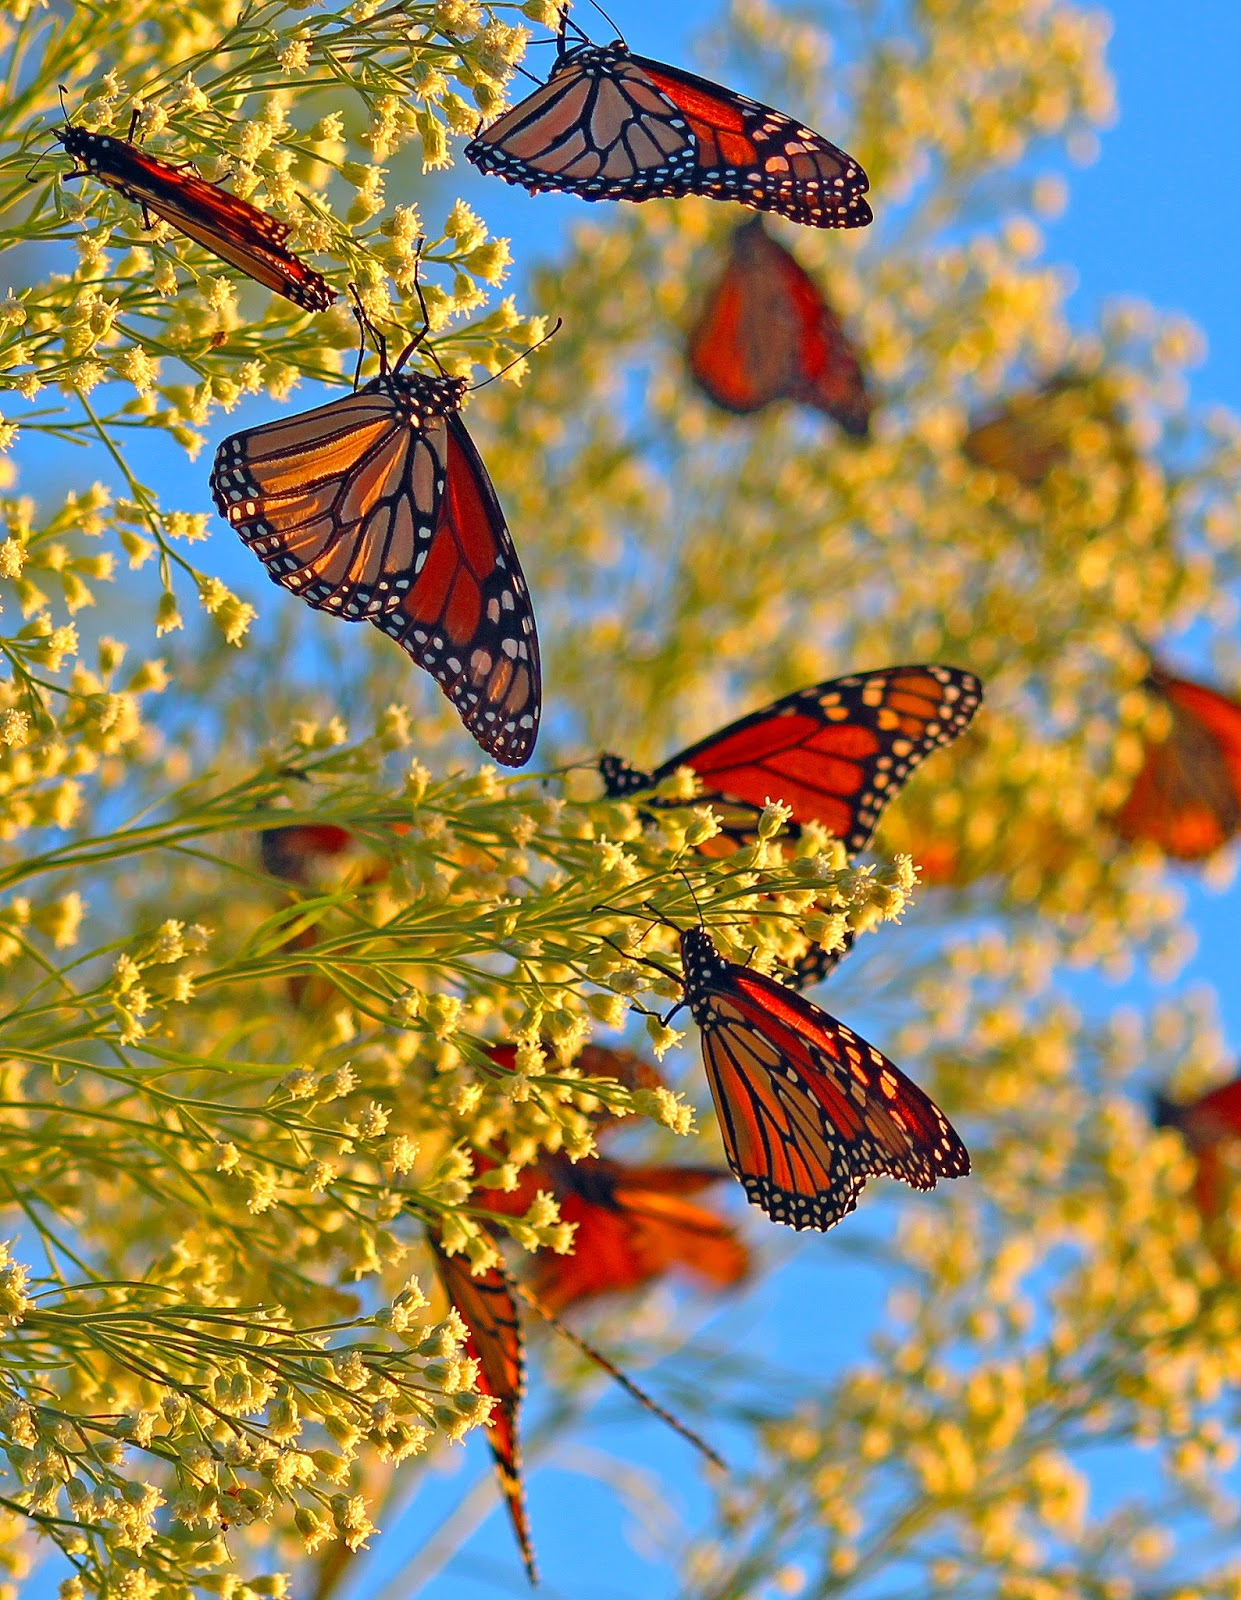 Monarch butterfly migration tree - photo#20